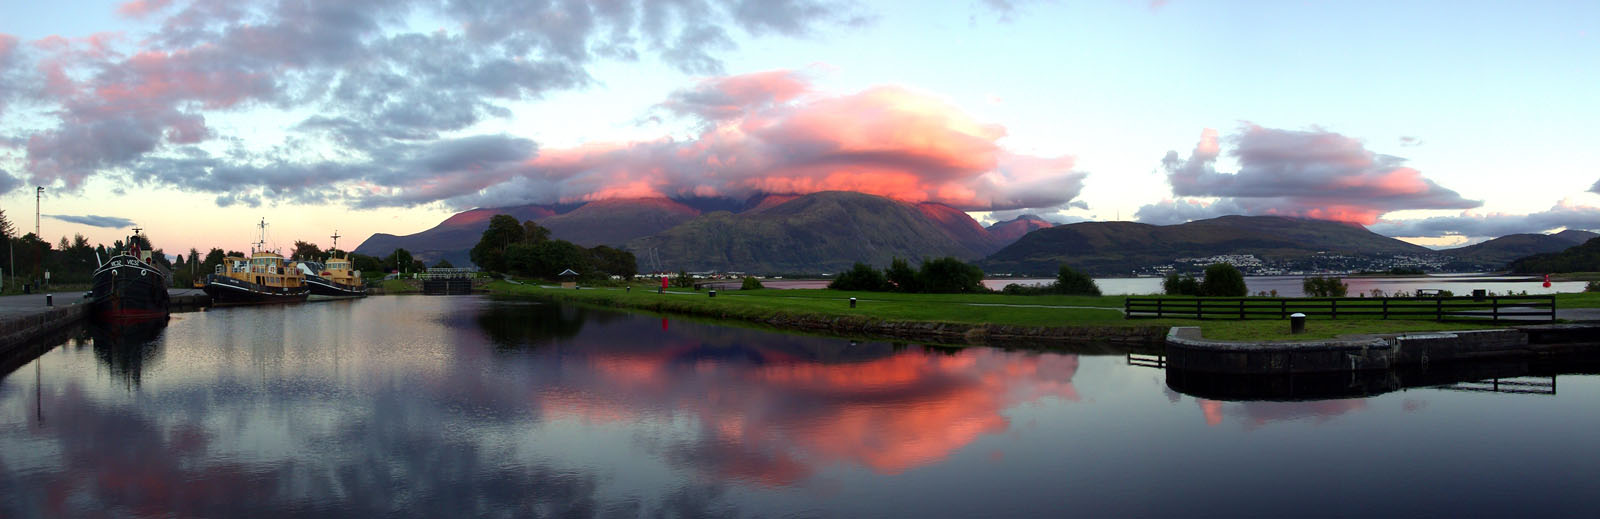 CALCANAL004 : The Caledonian Canal at Corpach